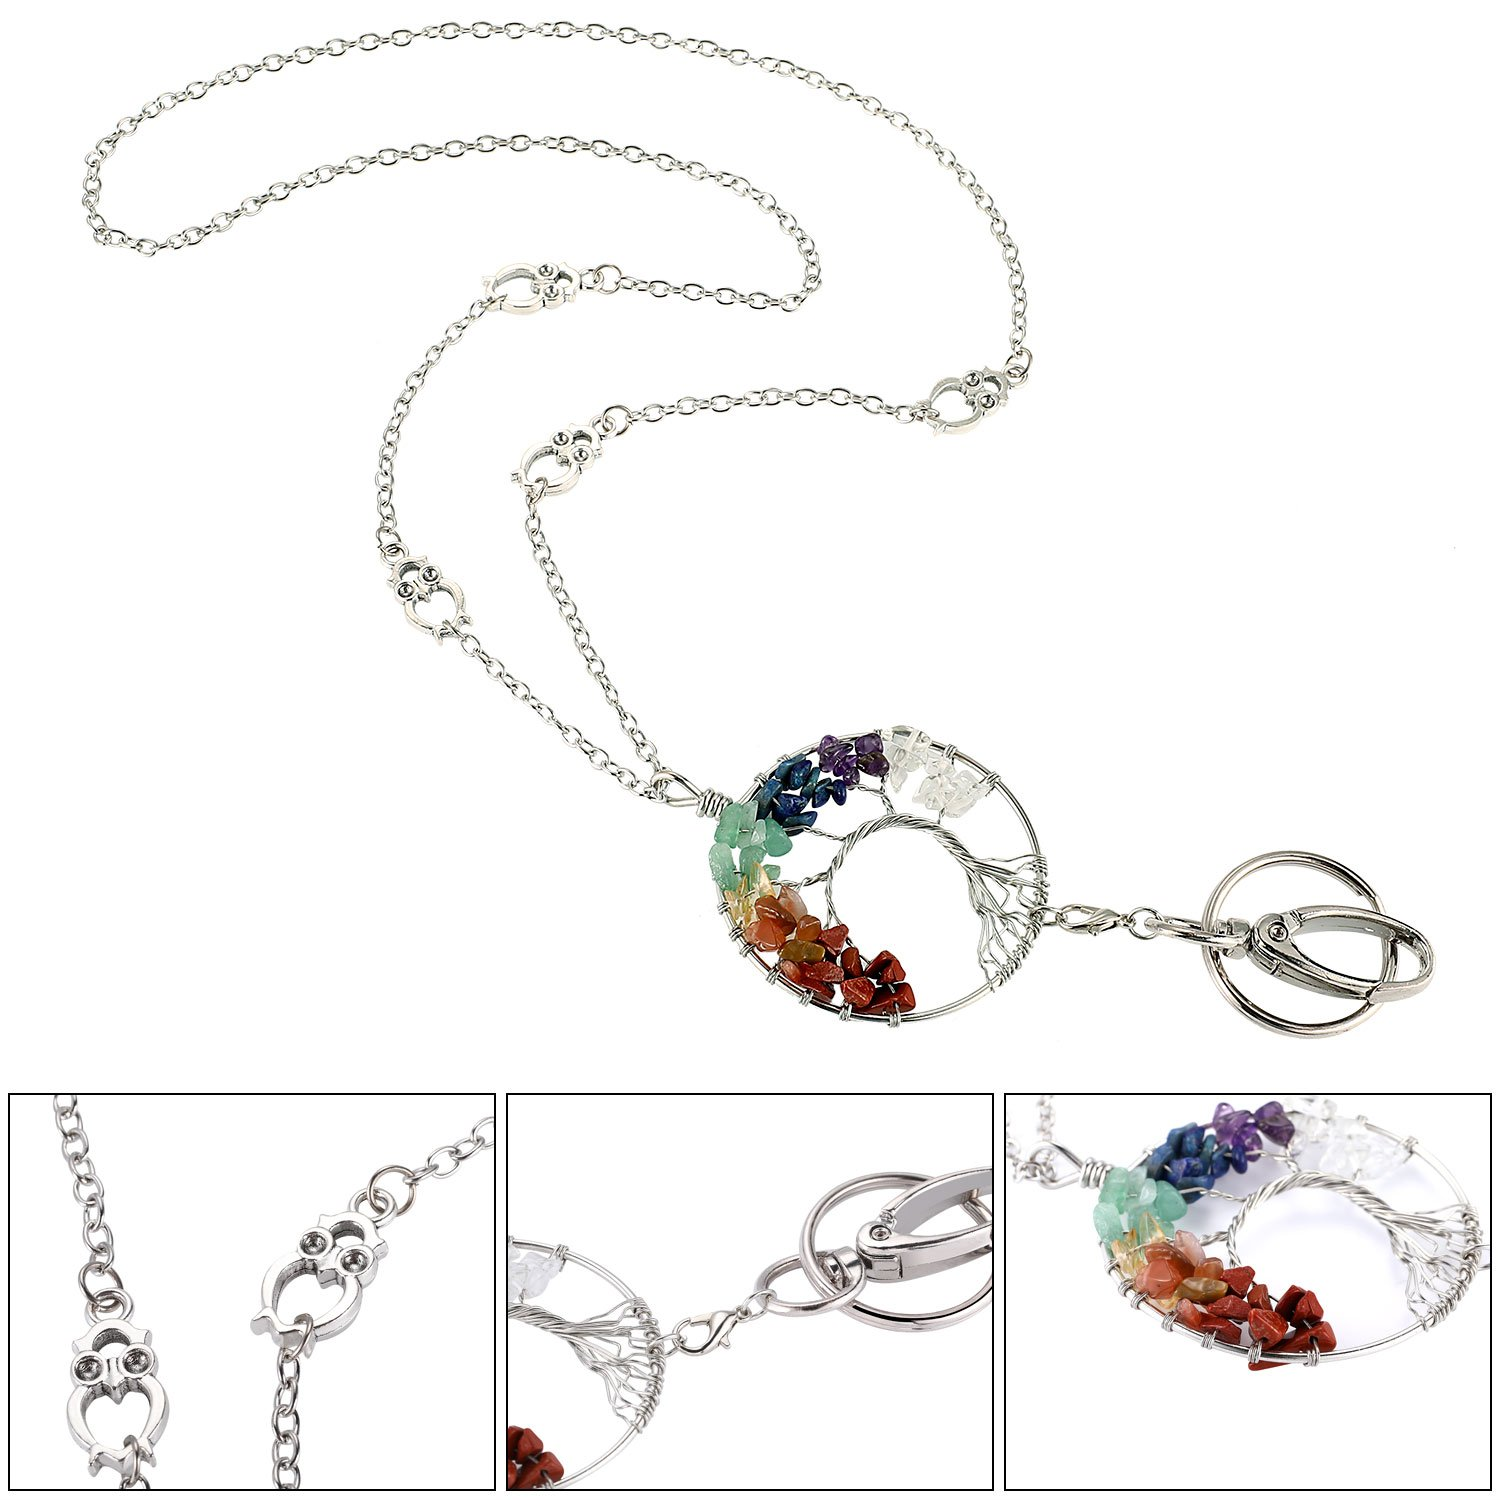 Jovitec 2 Pieces Women Lanyard Necklace Fashion Lanyard with Life Tree Pendant for ID Badge Holder